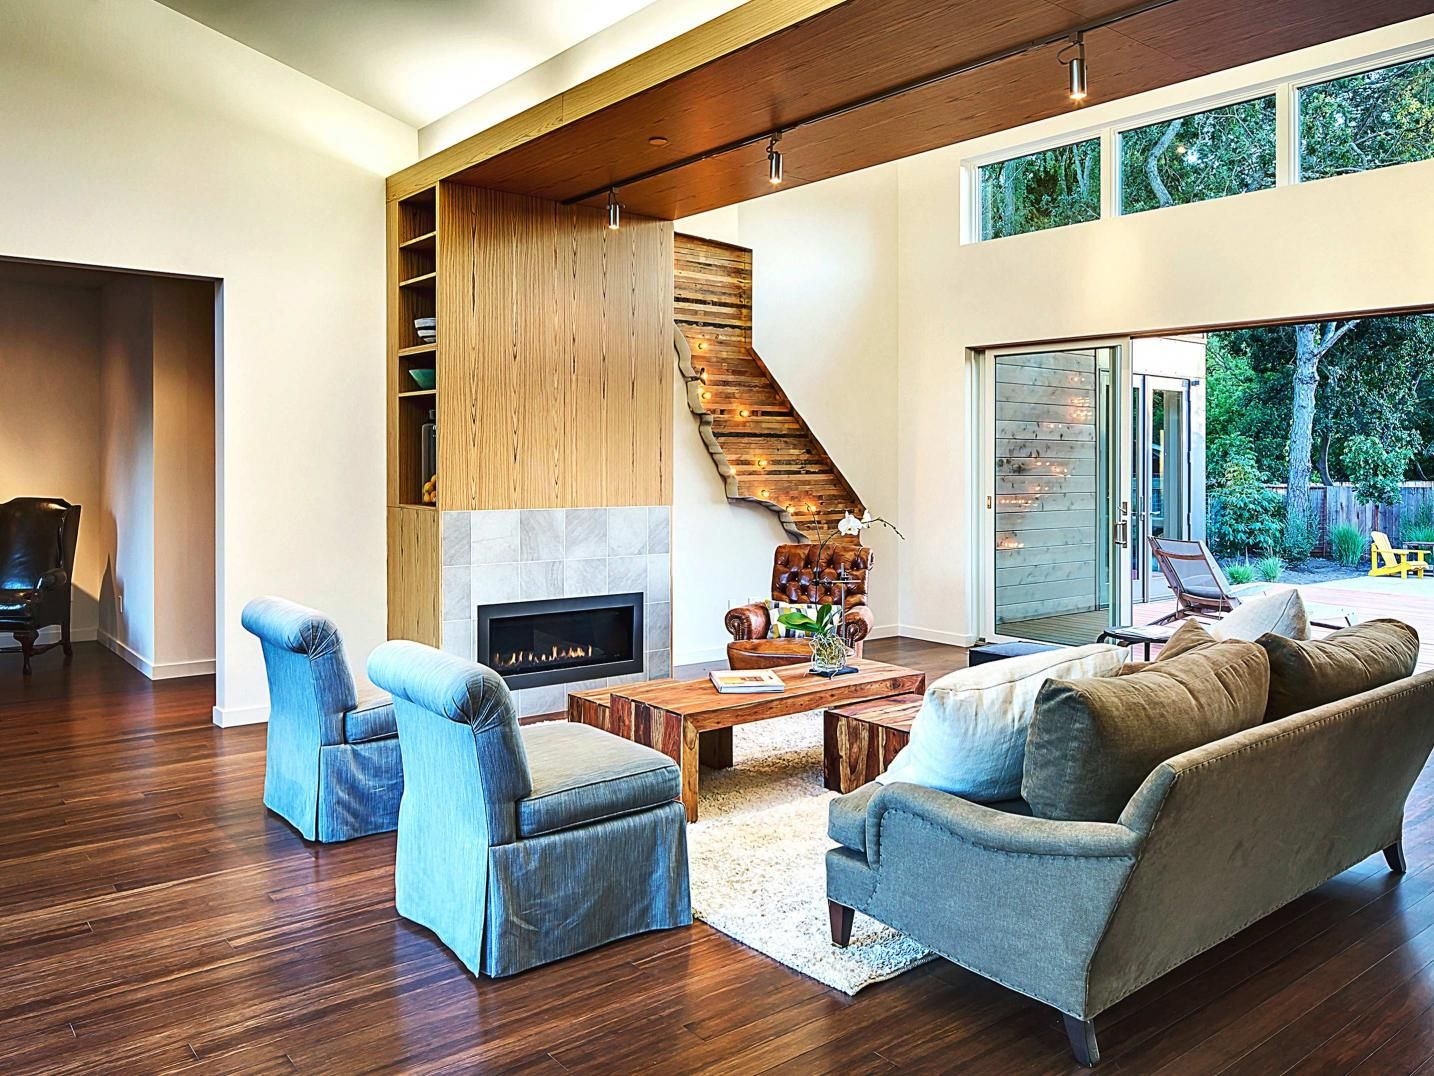 like the bookcase incorporated into the fireplace  scale of room is good